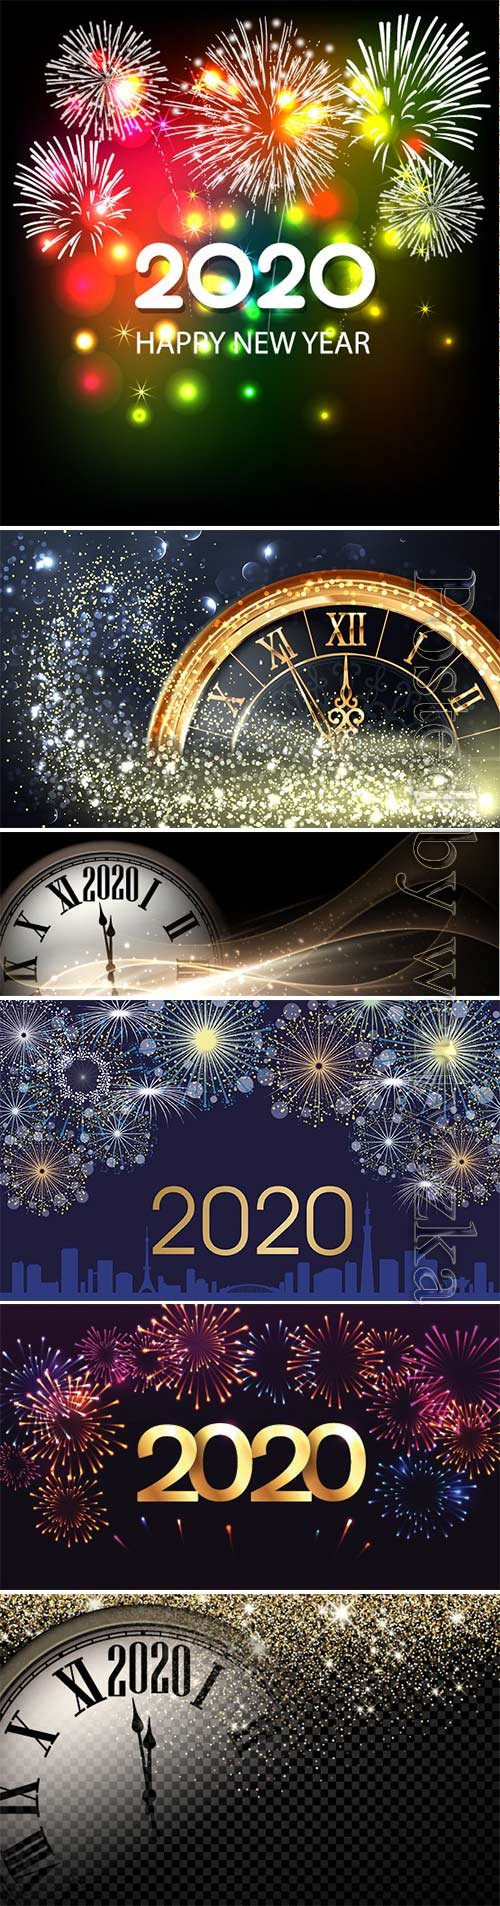 New Year 2020 golden and color vector fireworks